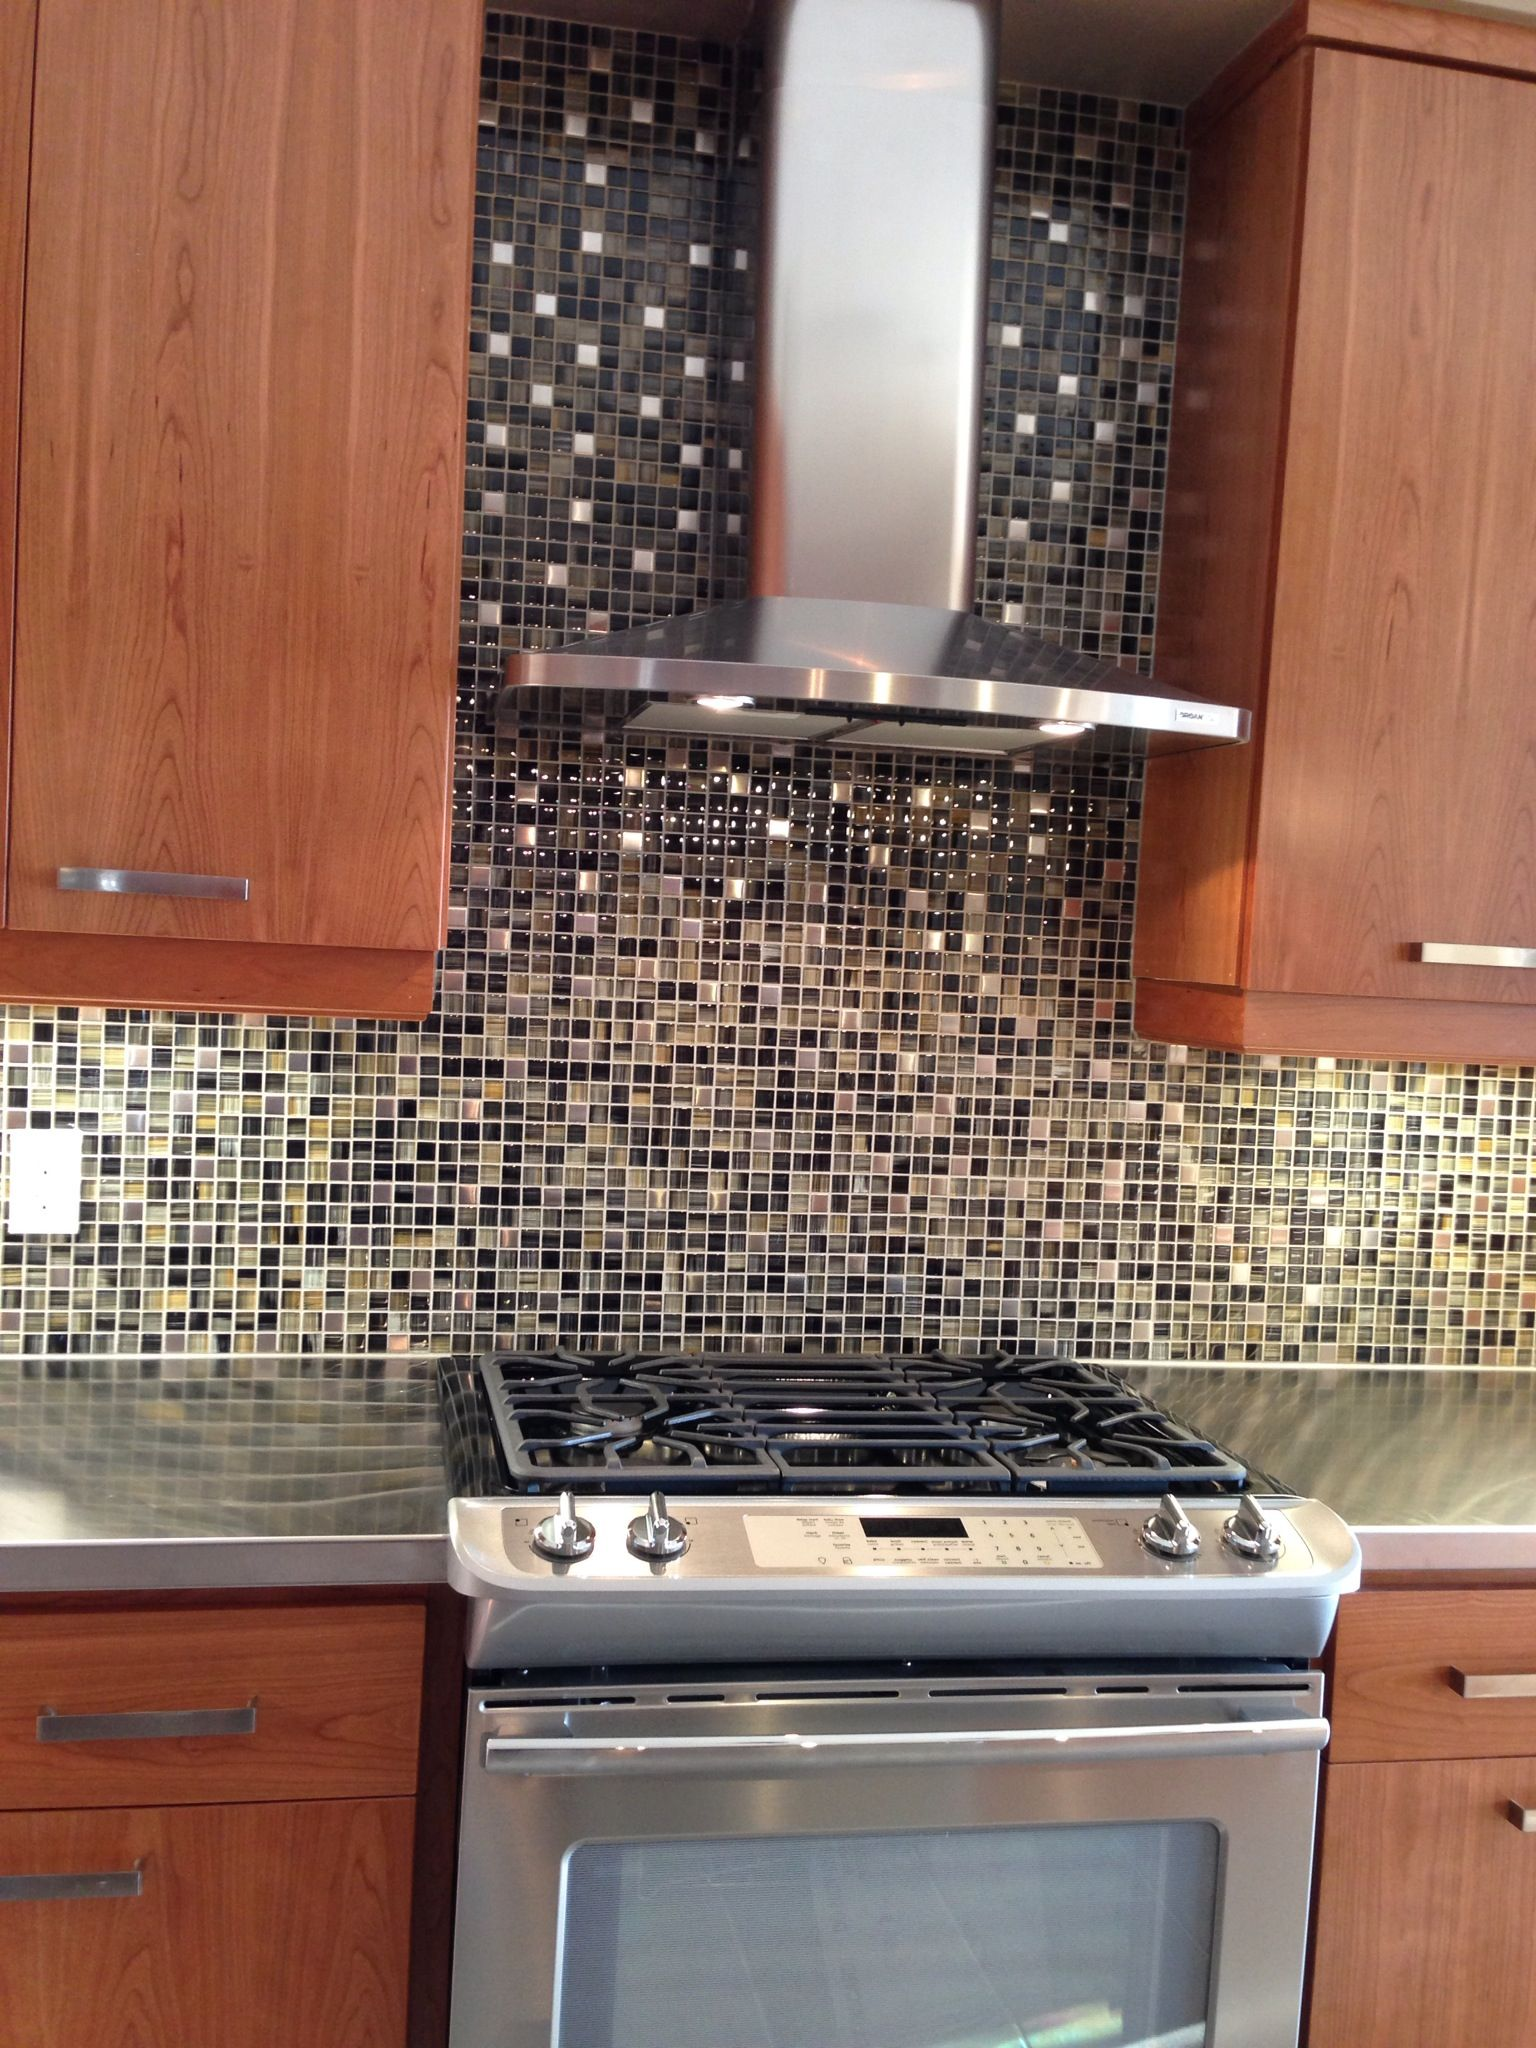 chimney hood fan man cave model home contemporary kitchen rh pinterest com